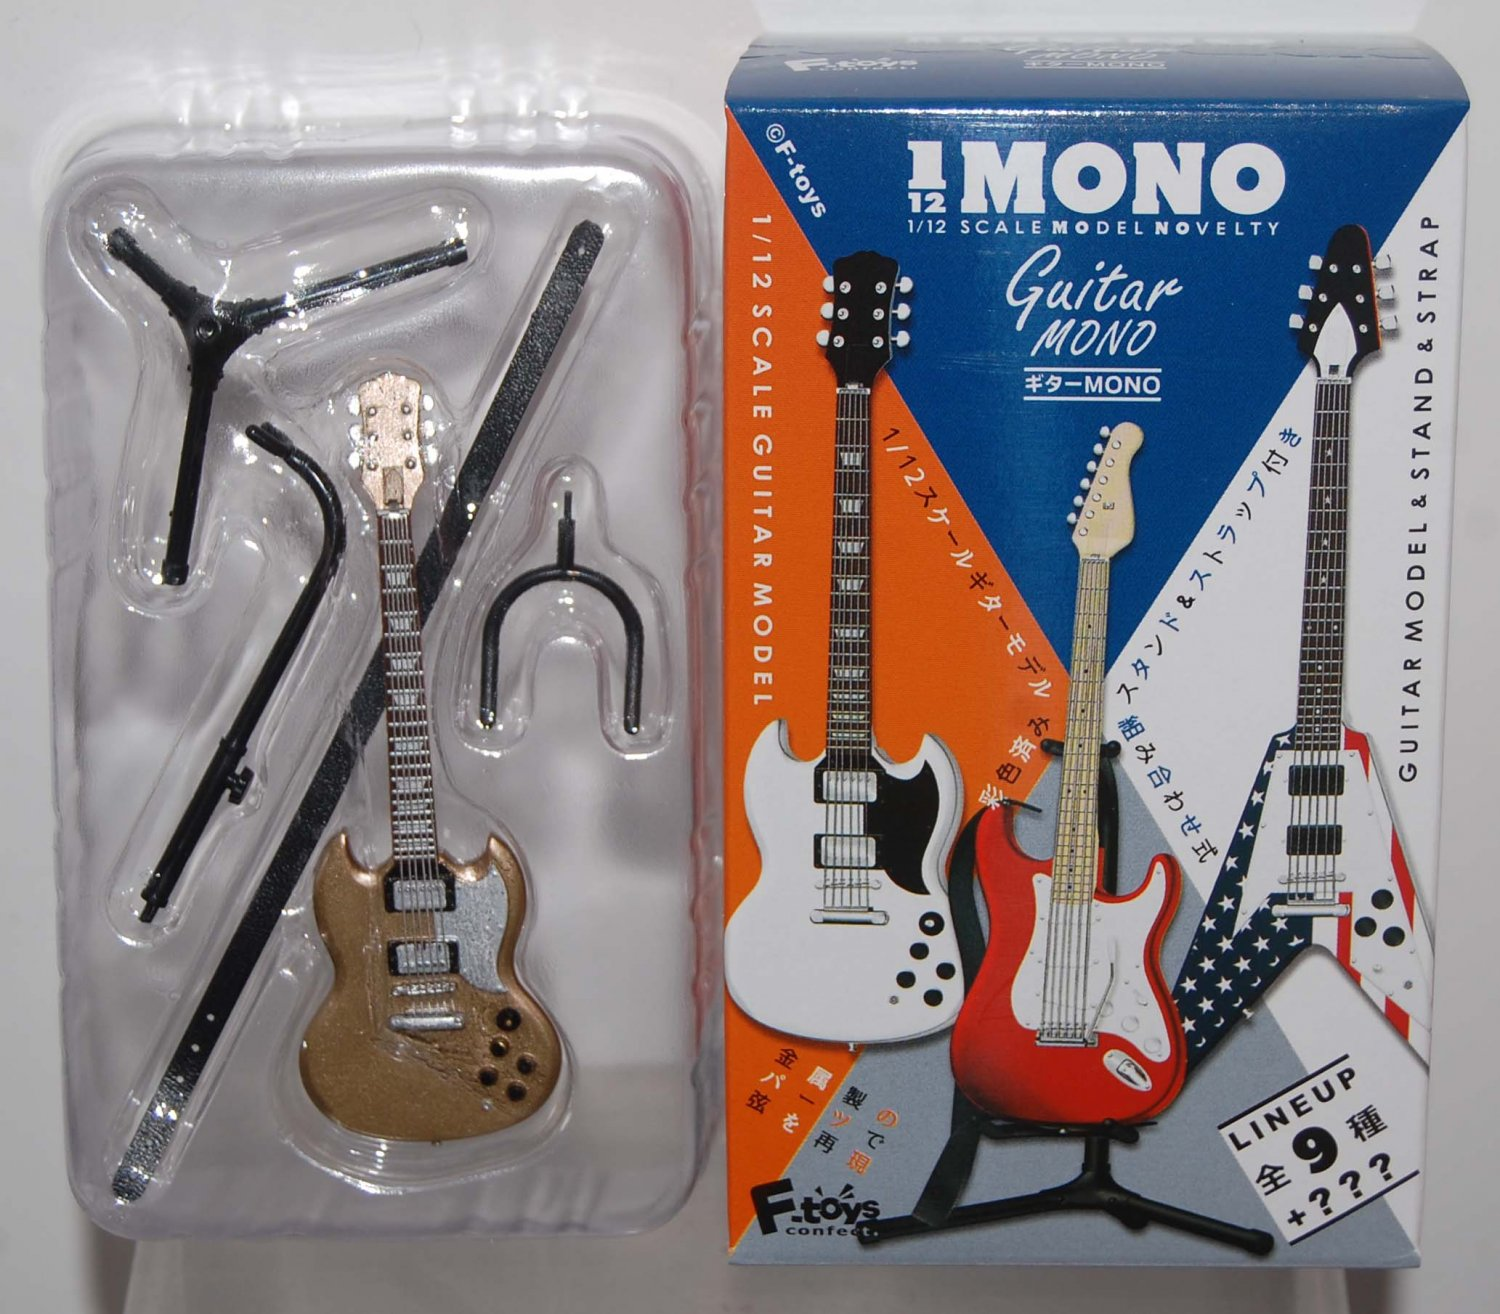 F Toys 1/12 Guitar Mono Stratype #2S GOLD Display Model w/ Stand Strap